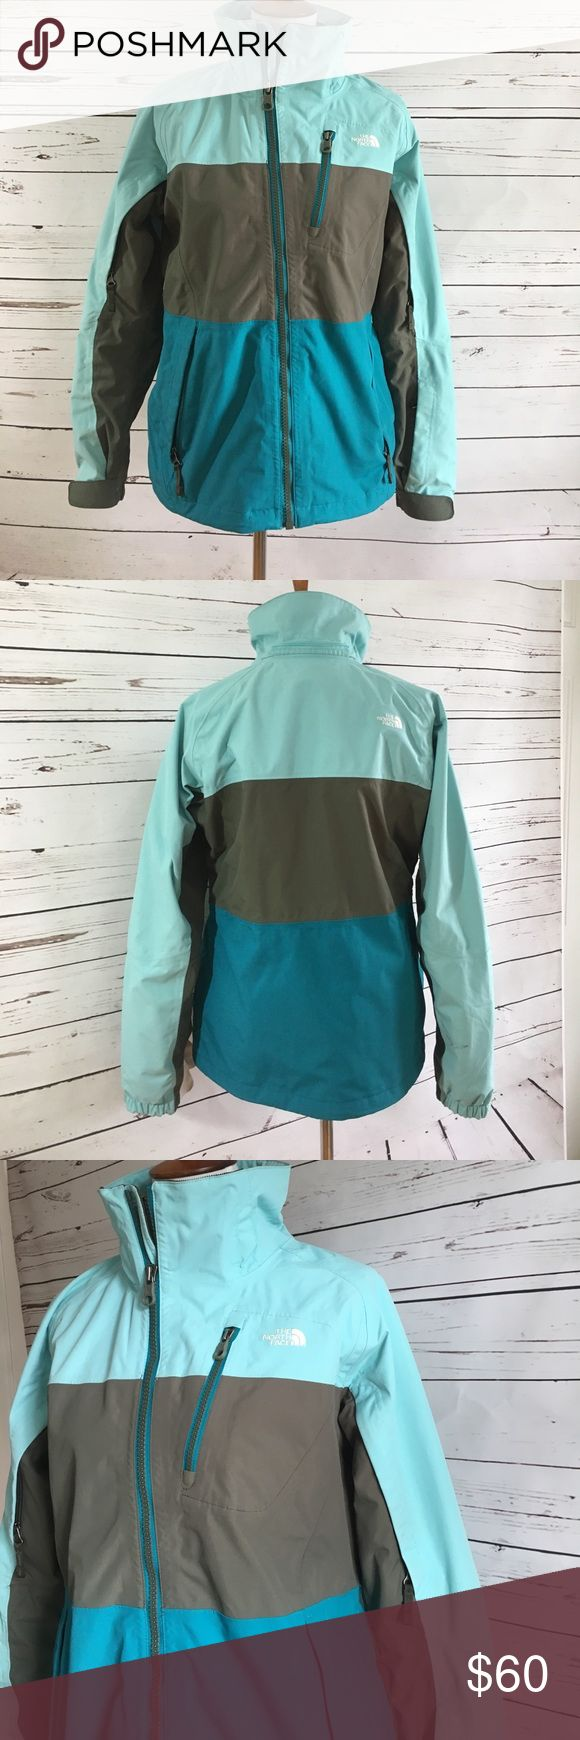 North Face ski jacket As is without hood 🙈. Awesome ski jacket. It has vents, a powder shield, secret pockets, goggle cloth. North Face Jackets & Coats